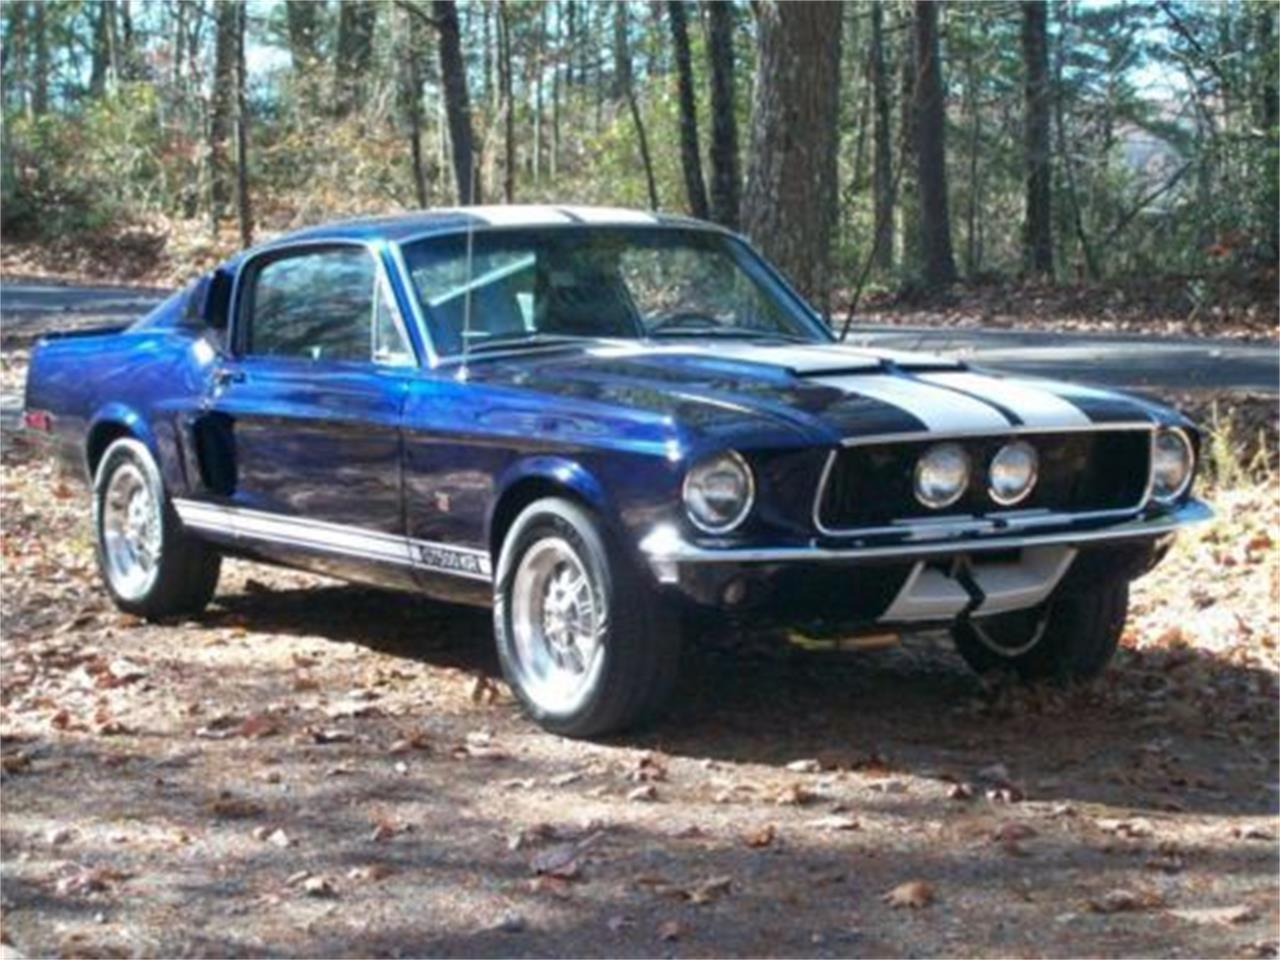 Large picture of 68 mustang o2ka